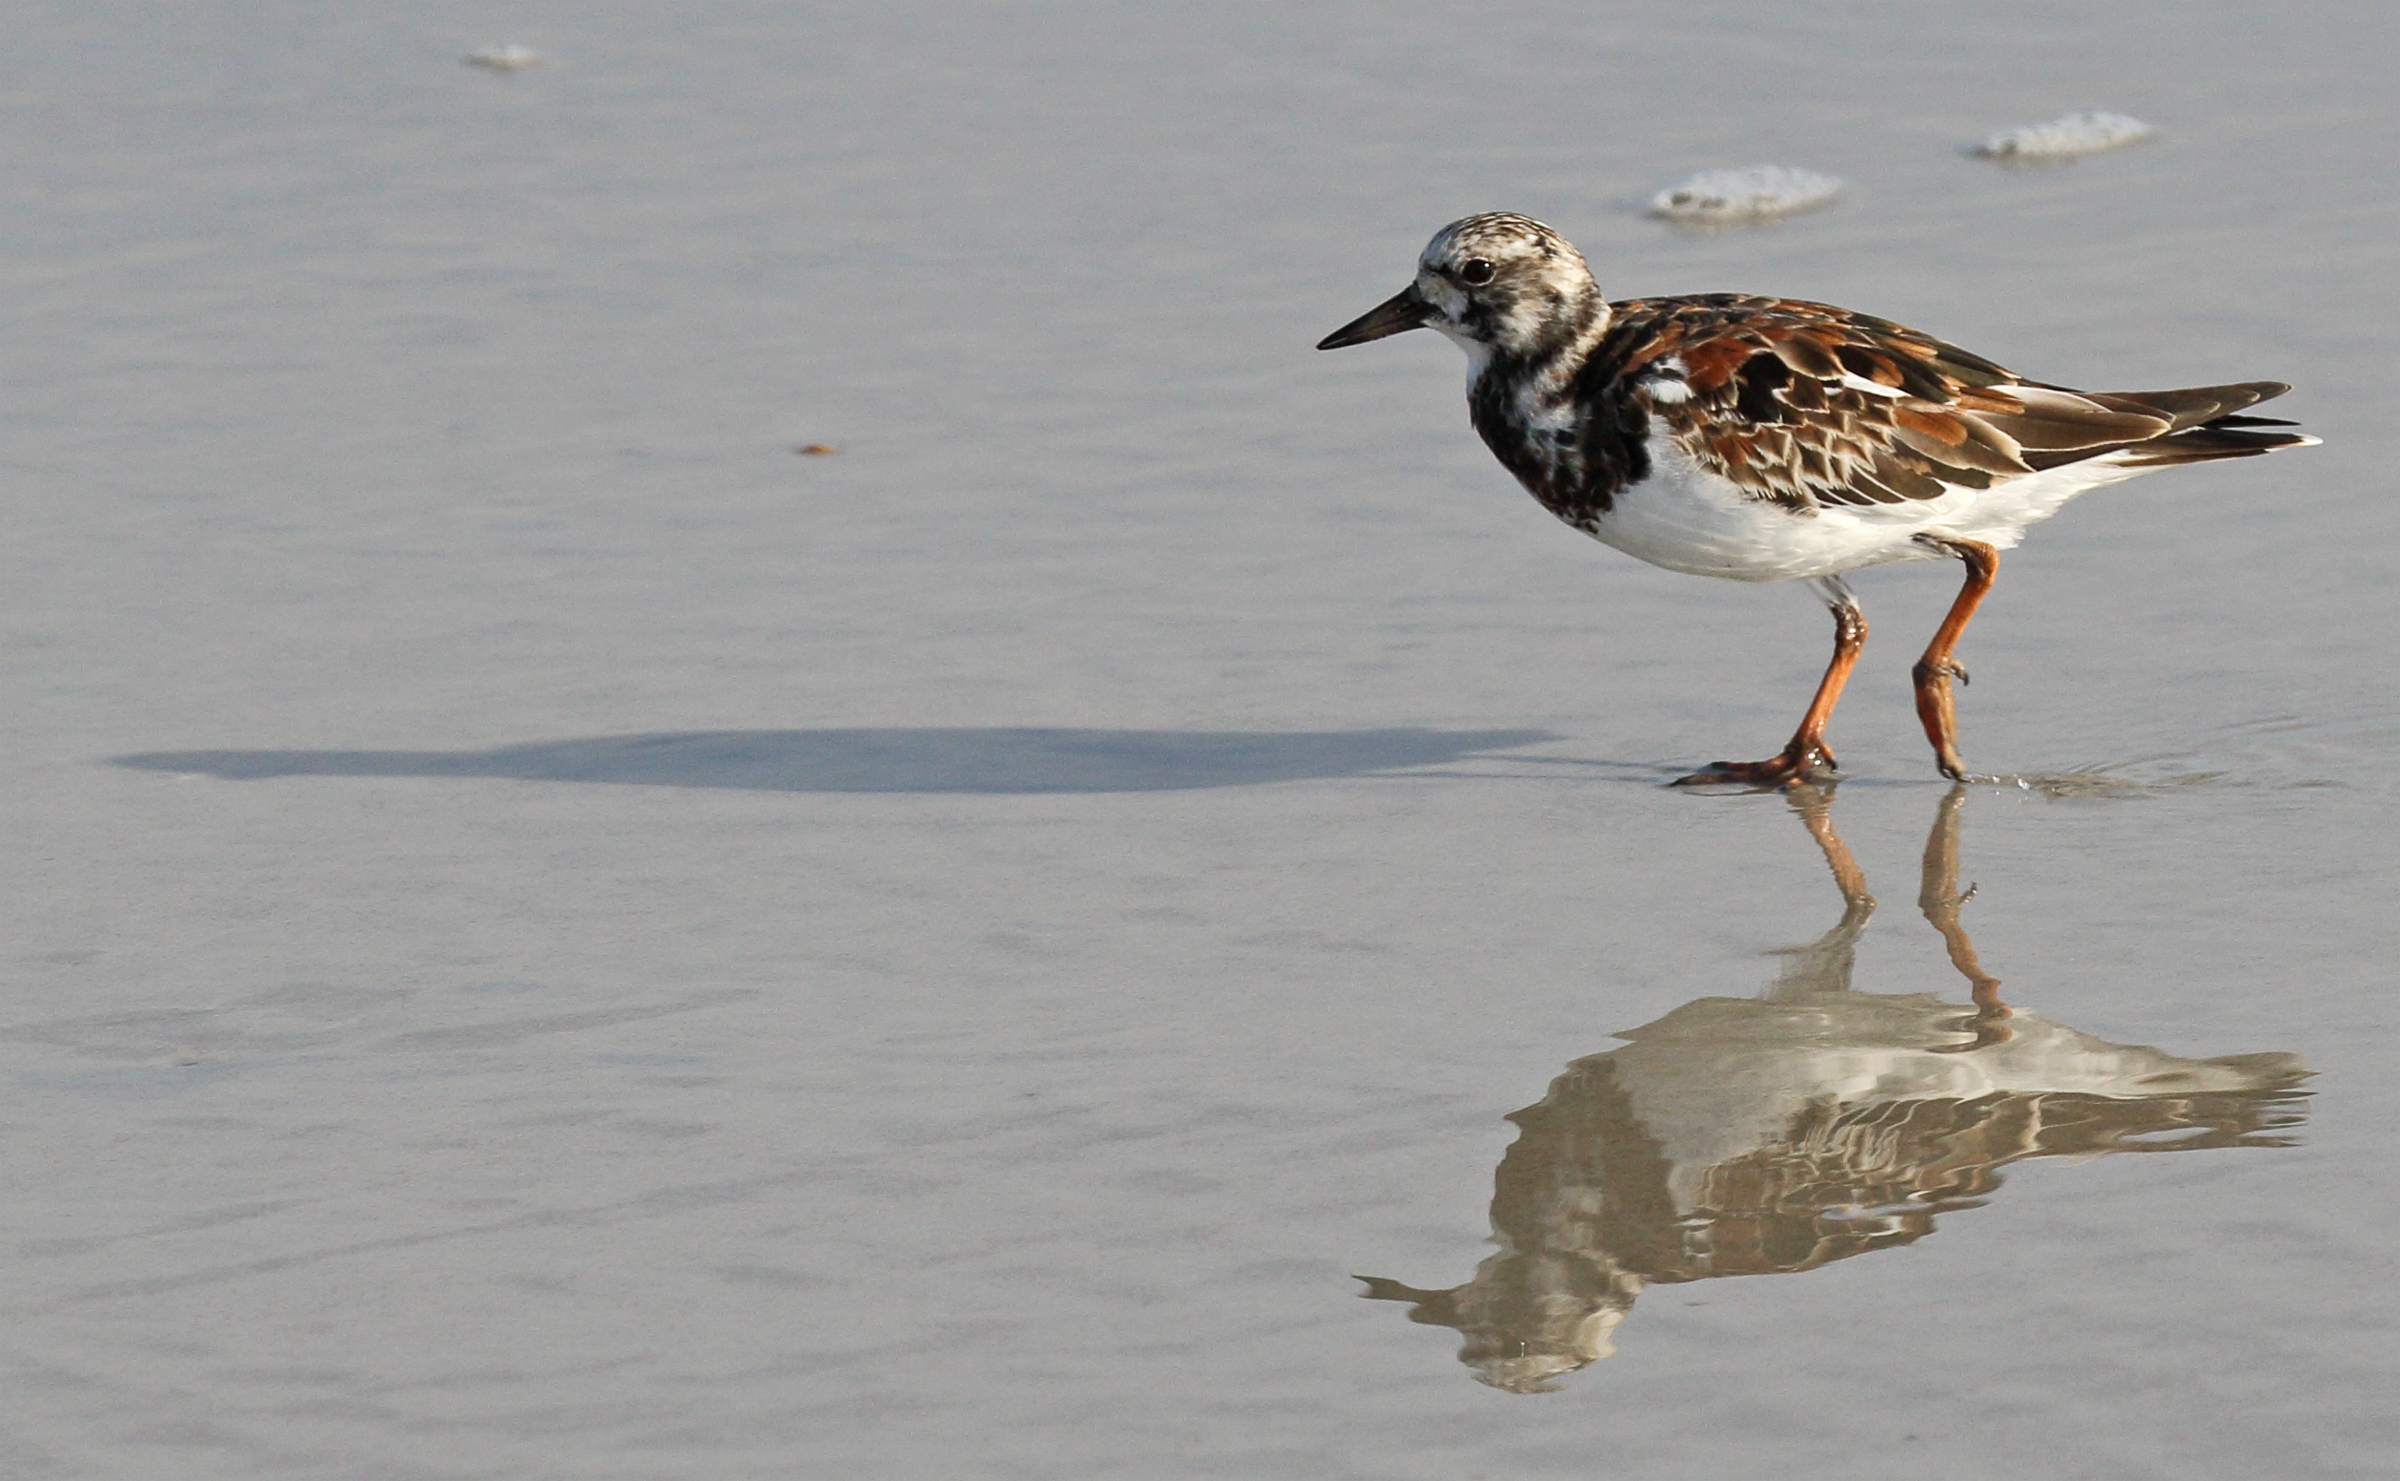 Ruddy Turnstone. Photo: Lane Kistler/Audubon Photography Awards.